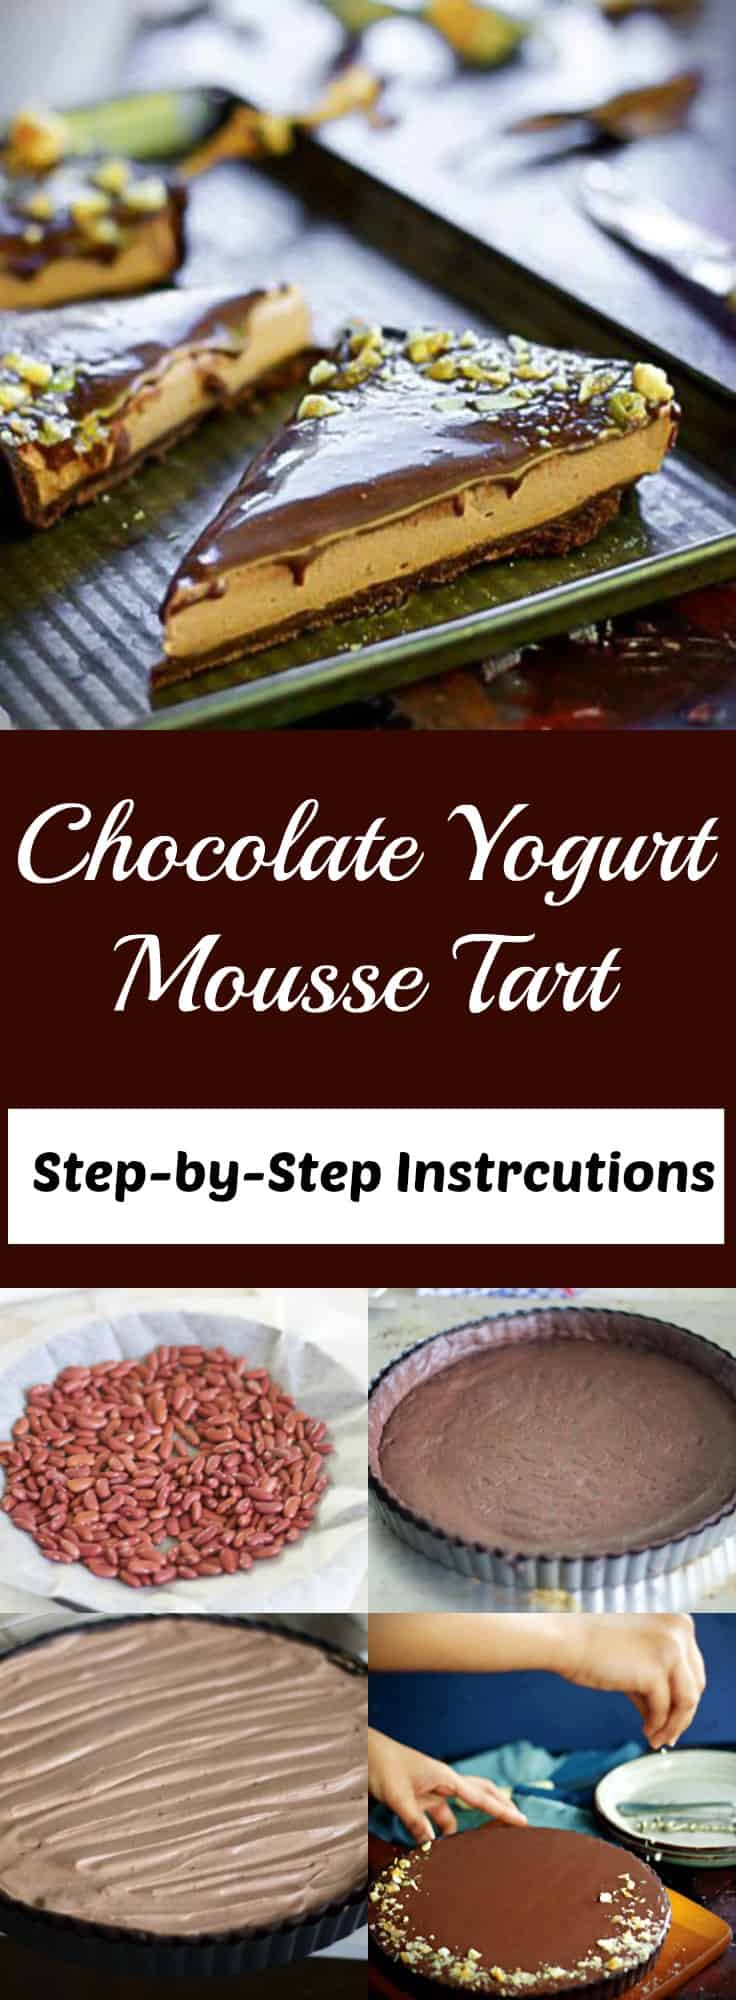 chocolate yogurt mousse tart pin image